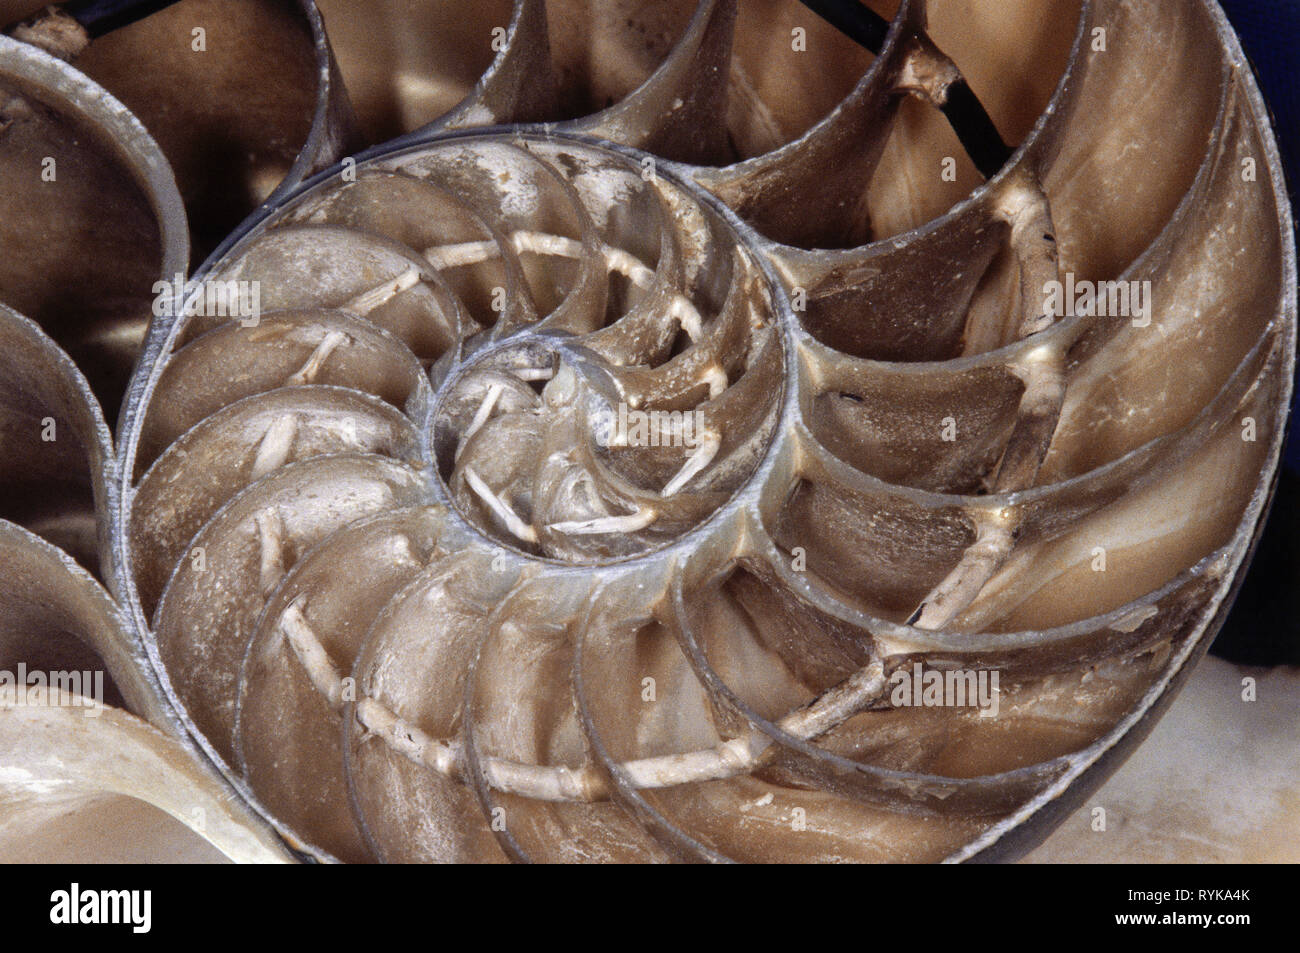 prehistory, prehistoric times, fossilization, nautilus, Additional-Rights-Clearance-Info-Not-Available - Stock Image